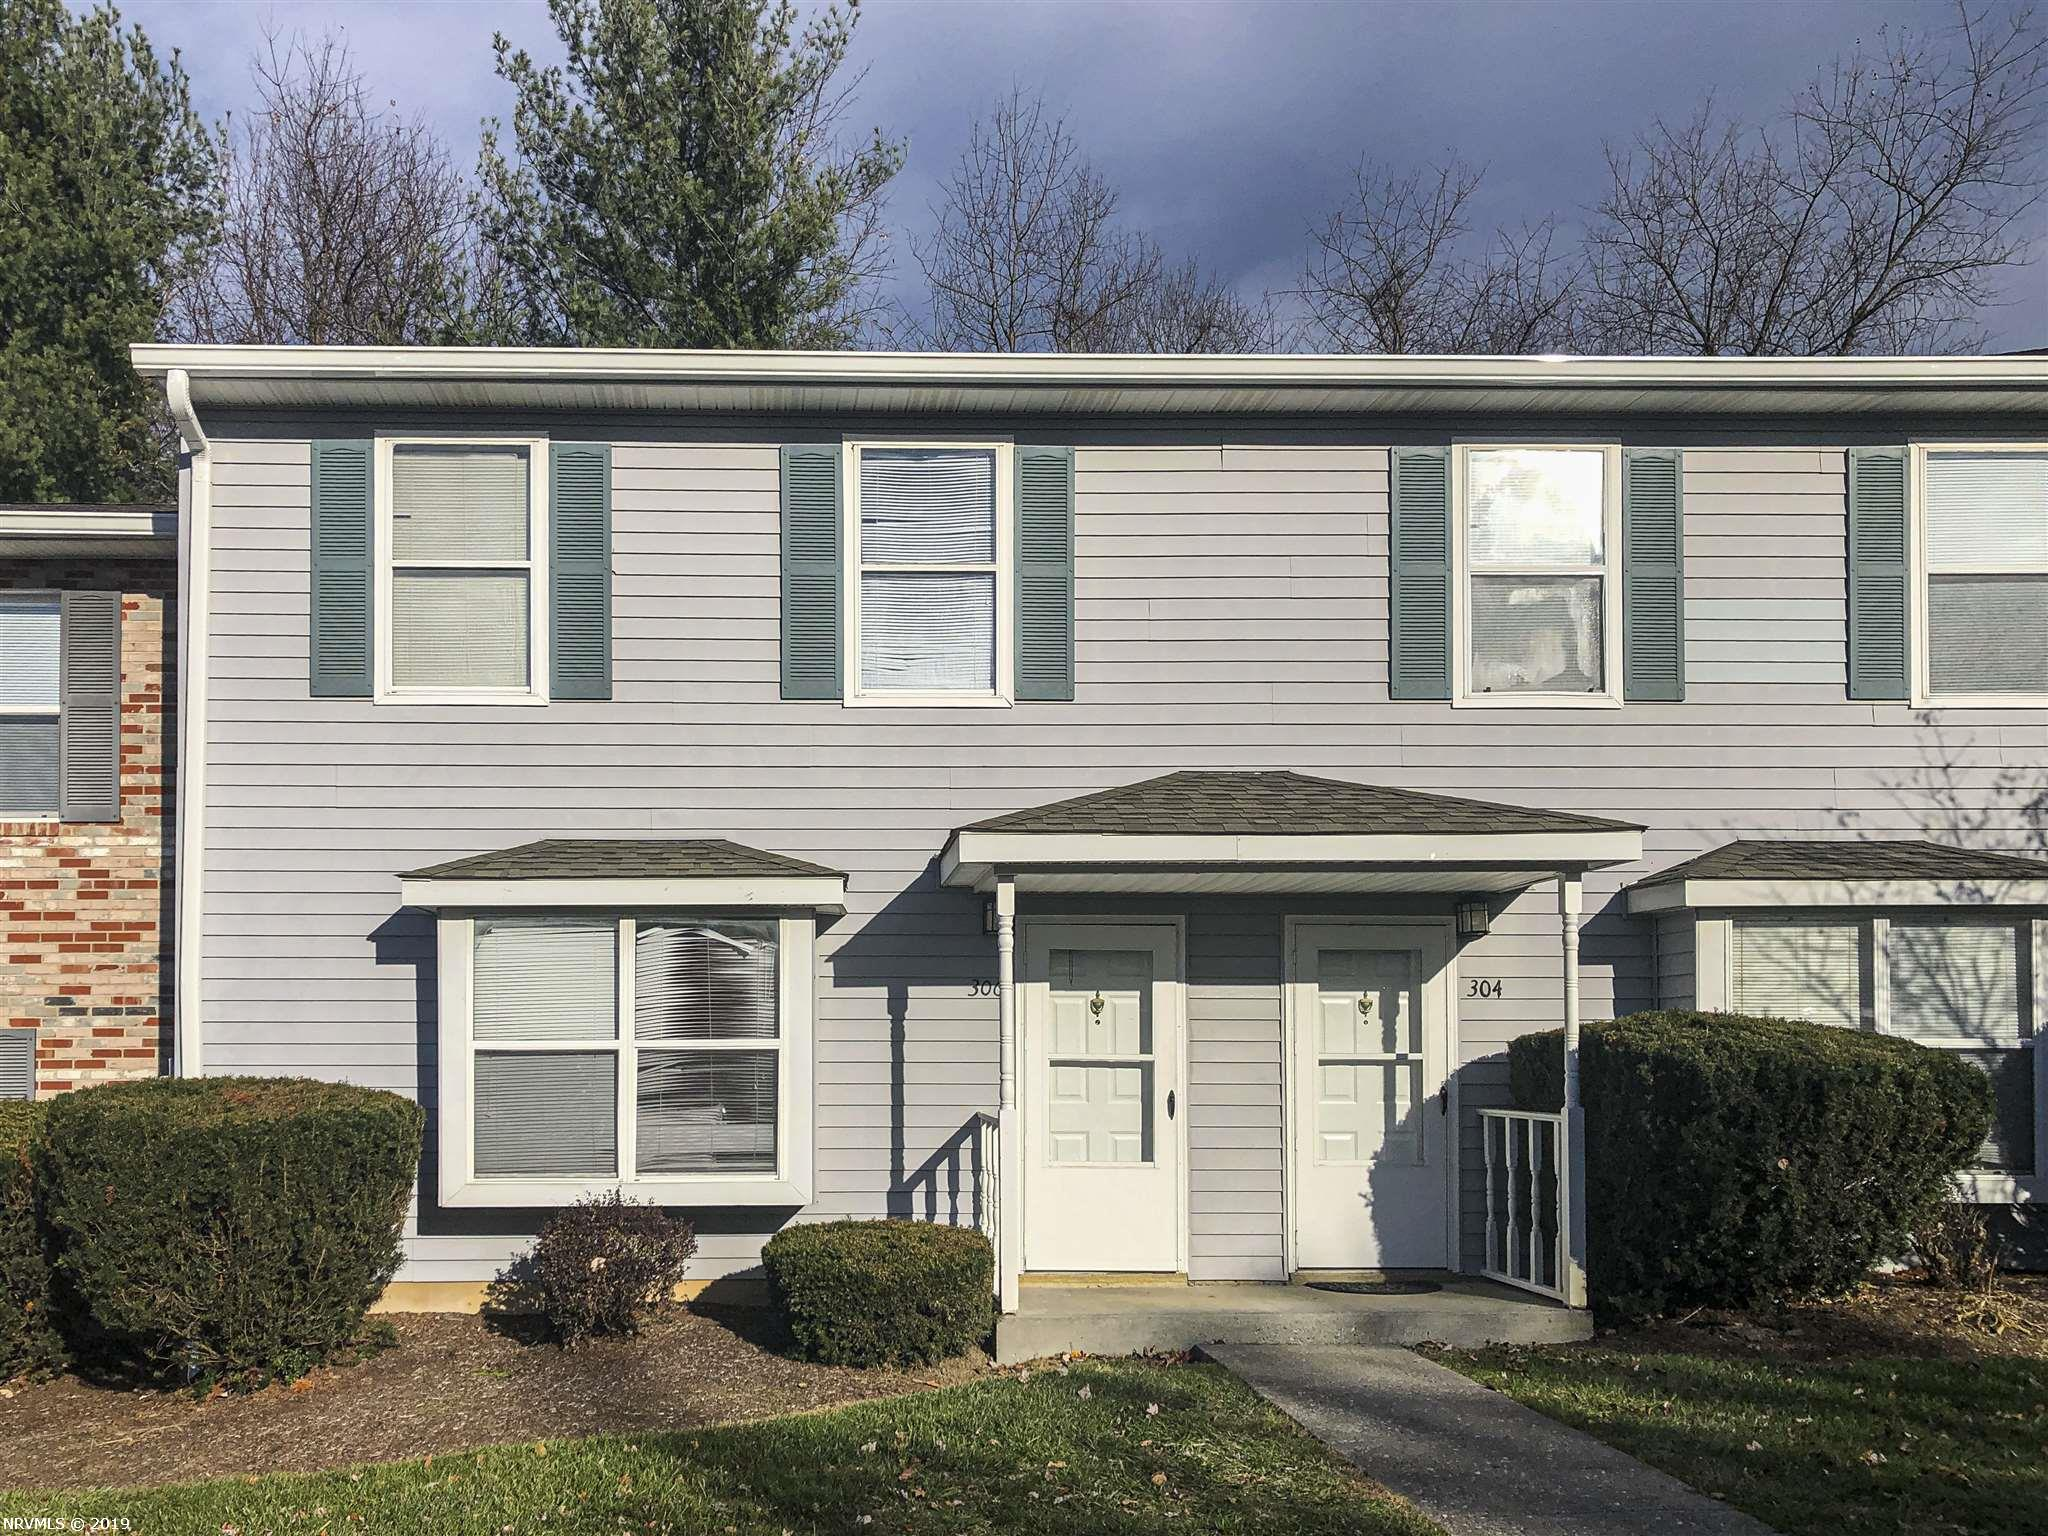 Highly desirable Pheasant Run Court townhouse. Popular Blacksburg community with the convenience to public transportation, Virginia Tech, shopping and dining! HOA covers all yard maintenance, pool maintenance, snow removal, and more. This unit is an excellent investment, ideal for students & young professionals. Schedule your showing today, this unit won't last long!